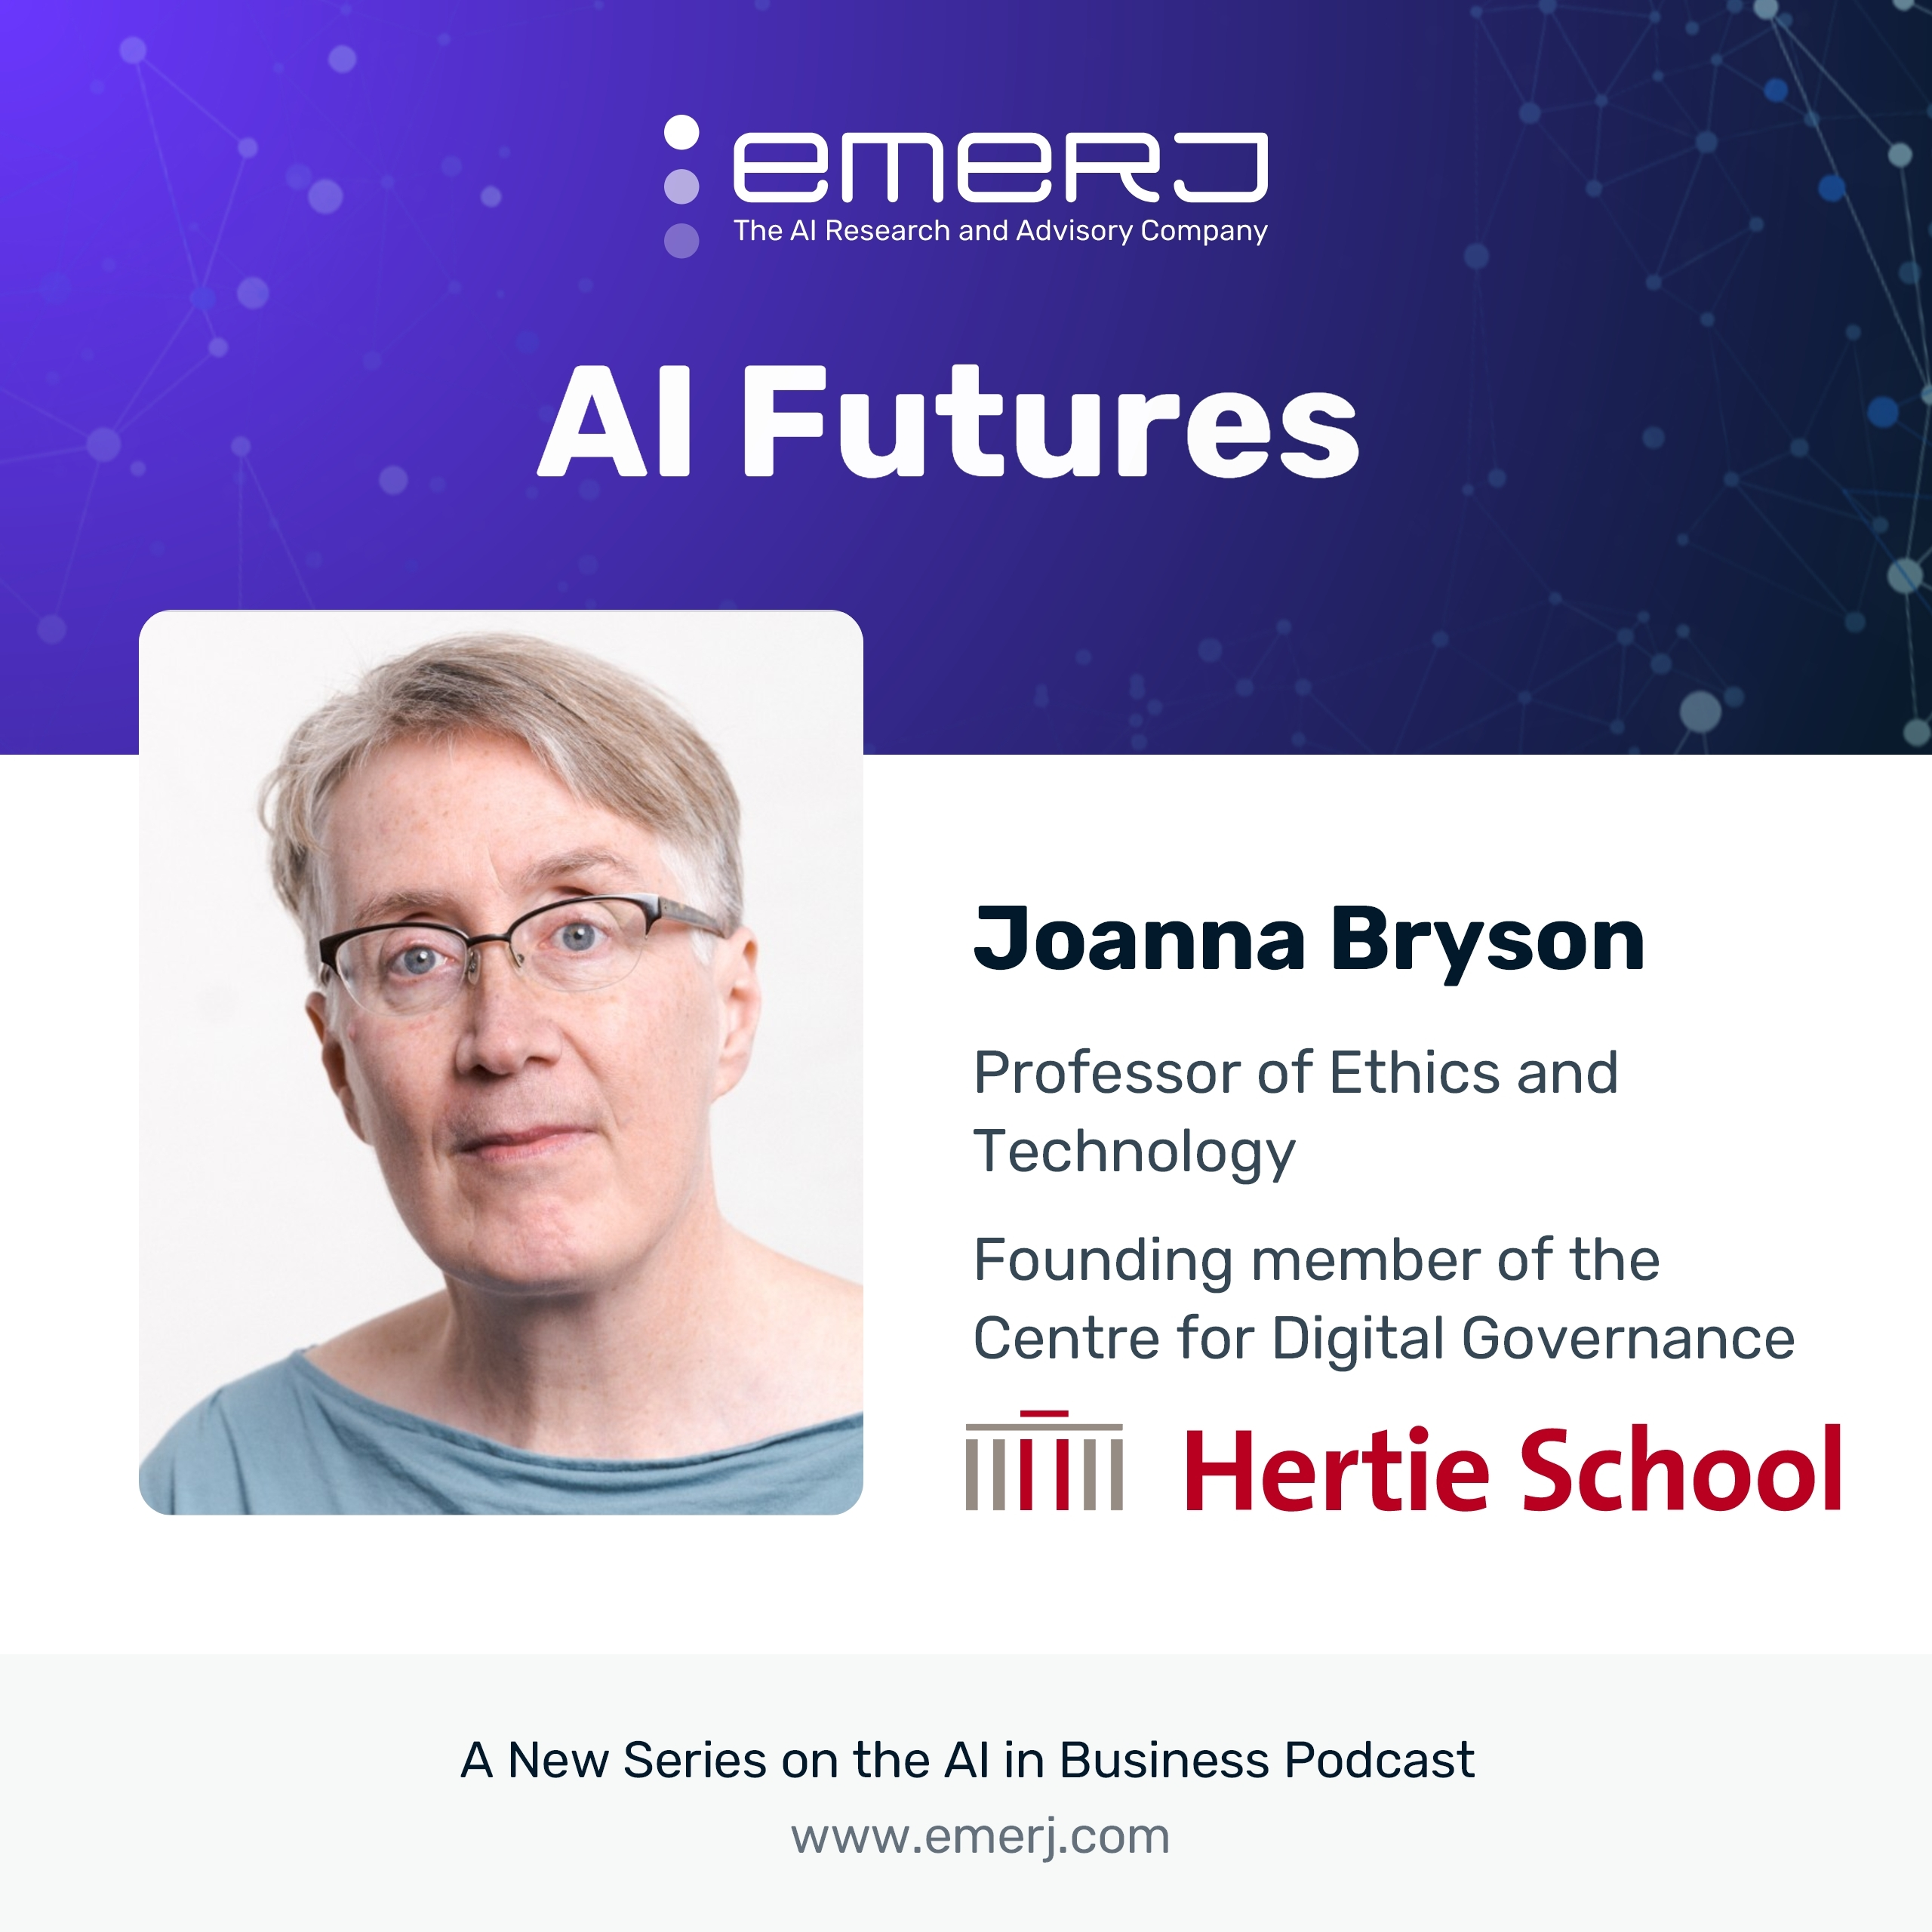 [AI Futures - S2E6] The Future of Security and Privacy in an AI-Enabled World - with Dr. Joanna Bryson of the Hertie School